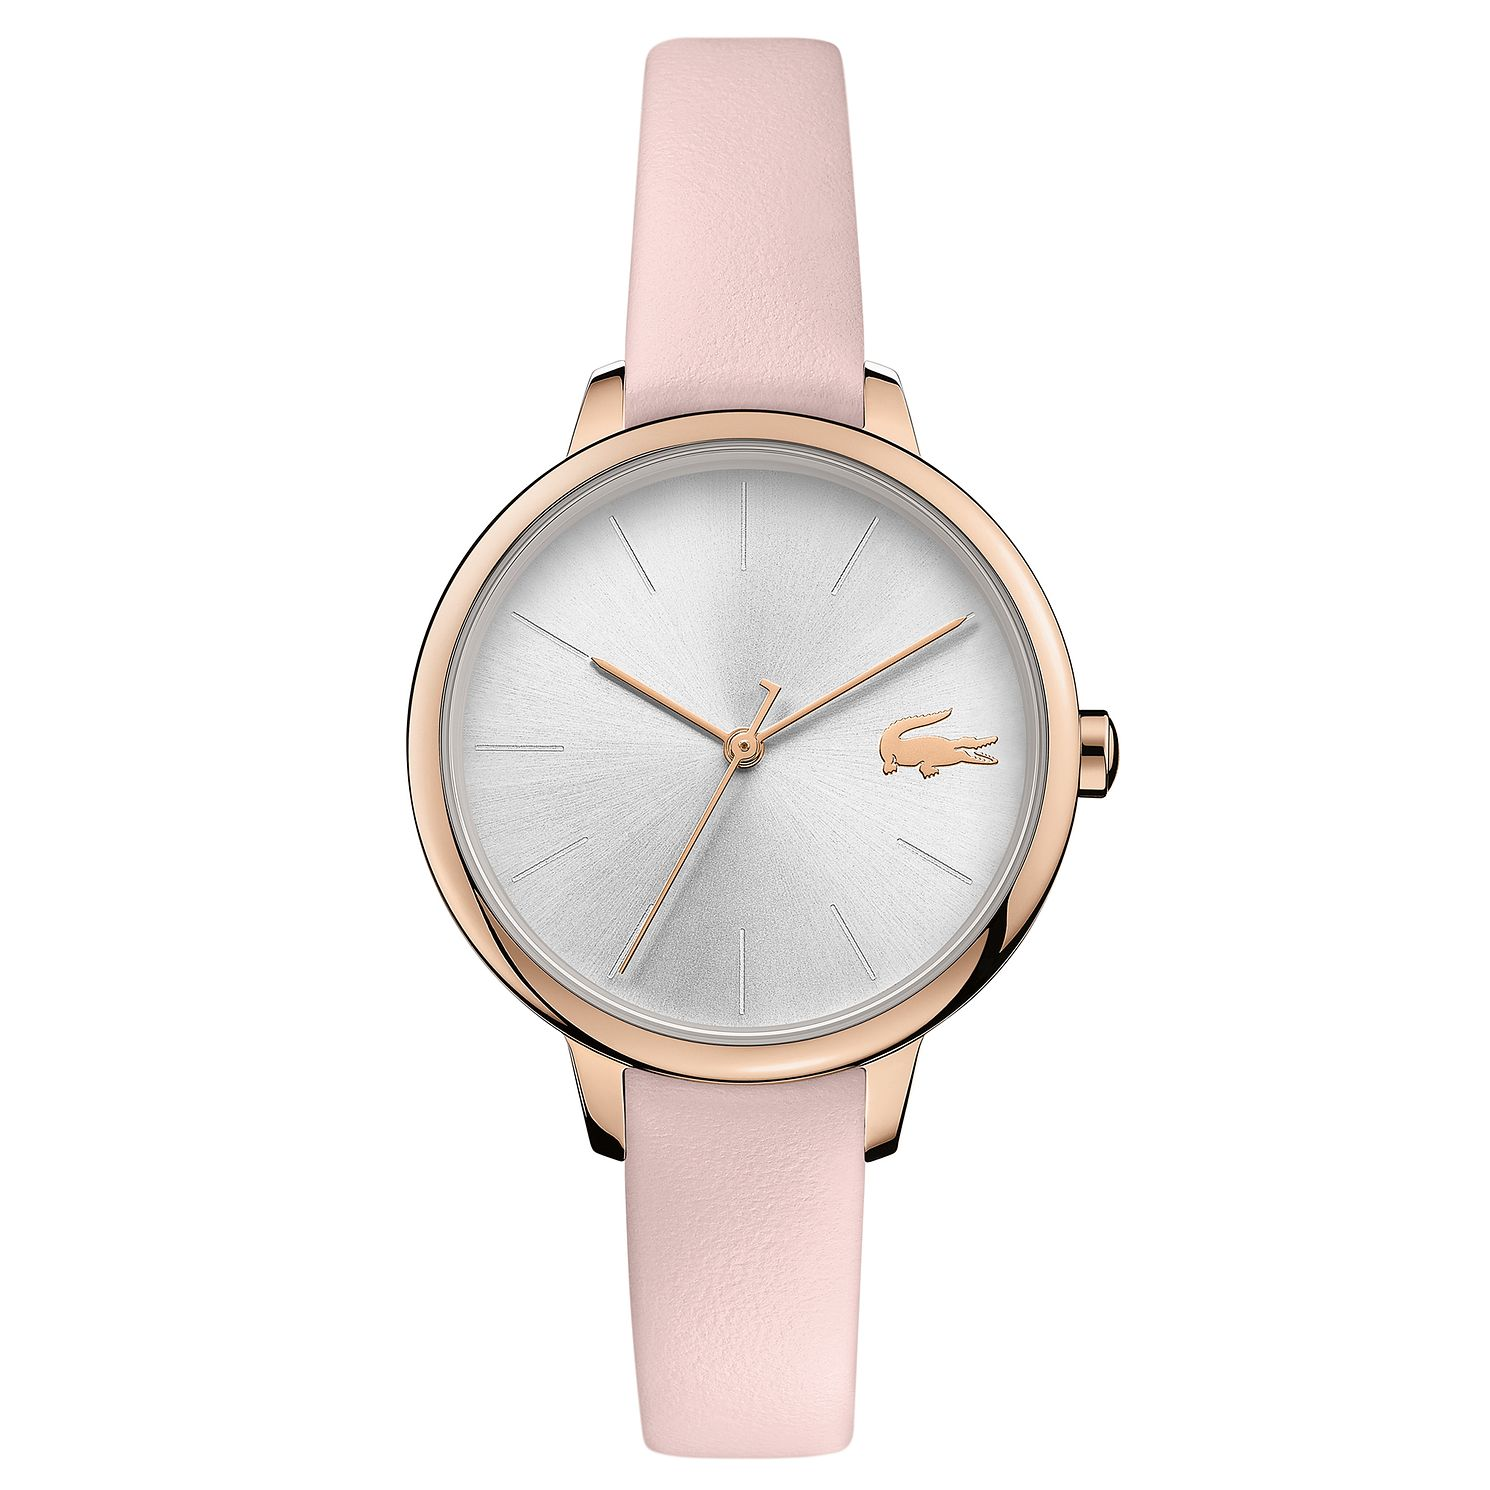 Lacoste Cannes Ladies' Pink Leather Strap Watch - Product number 5058333